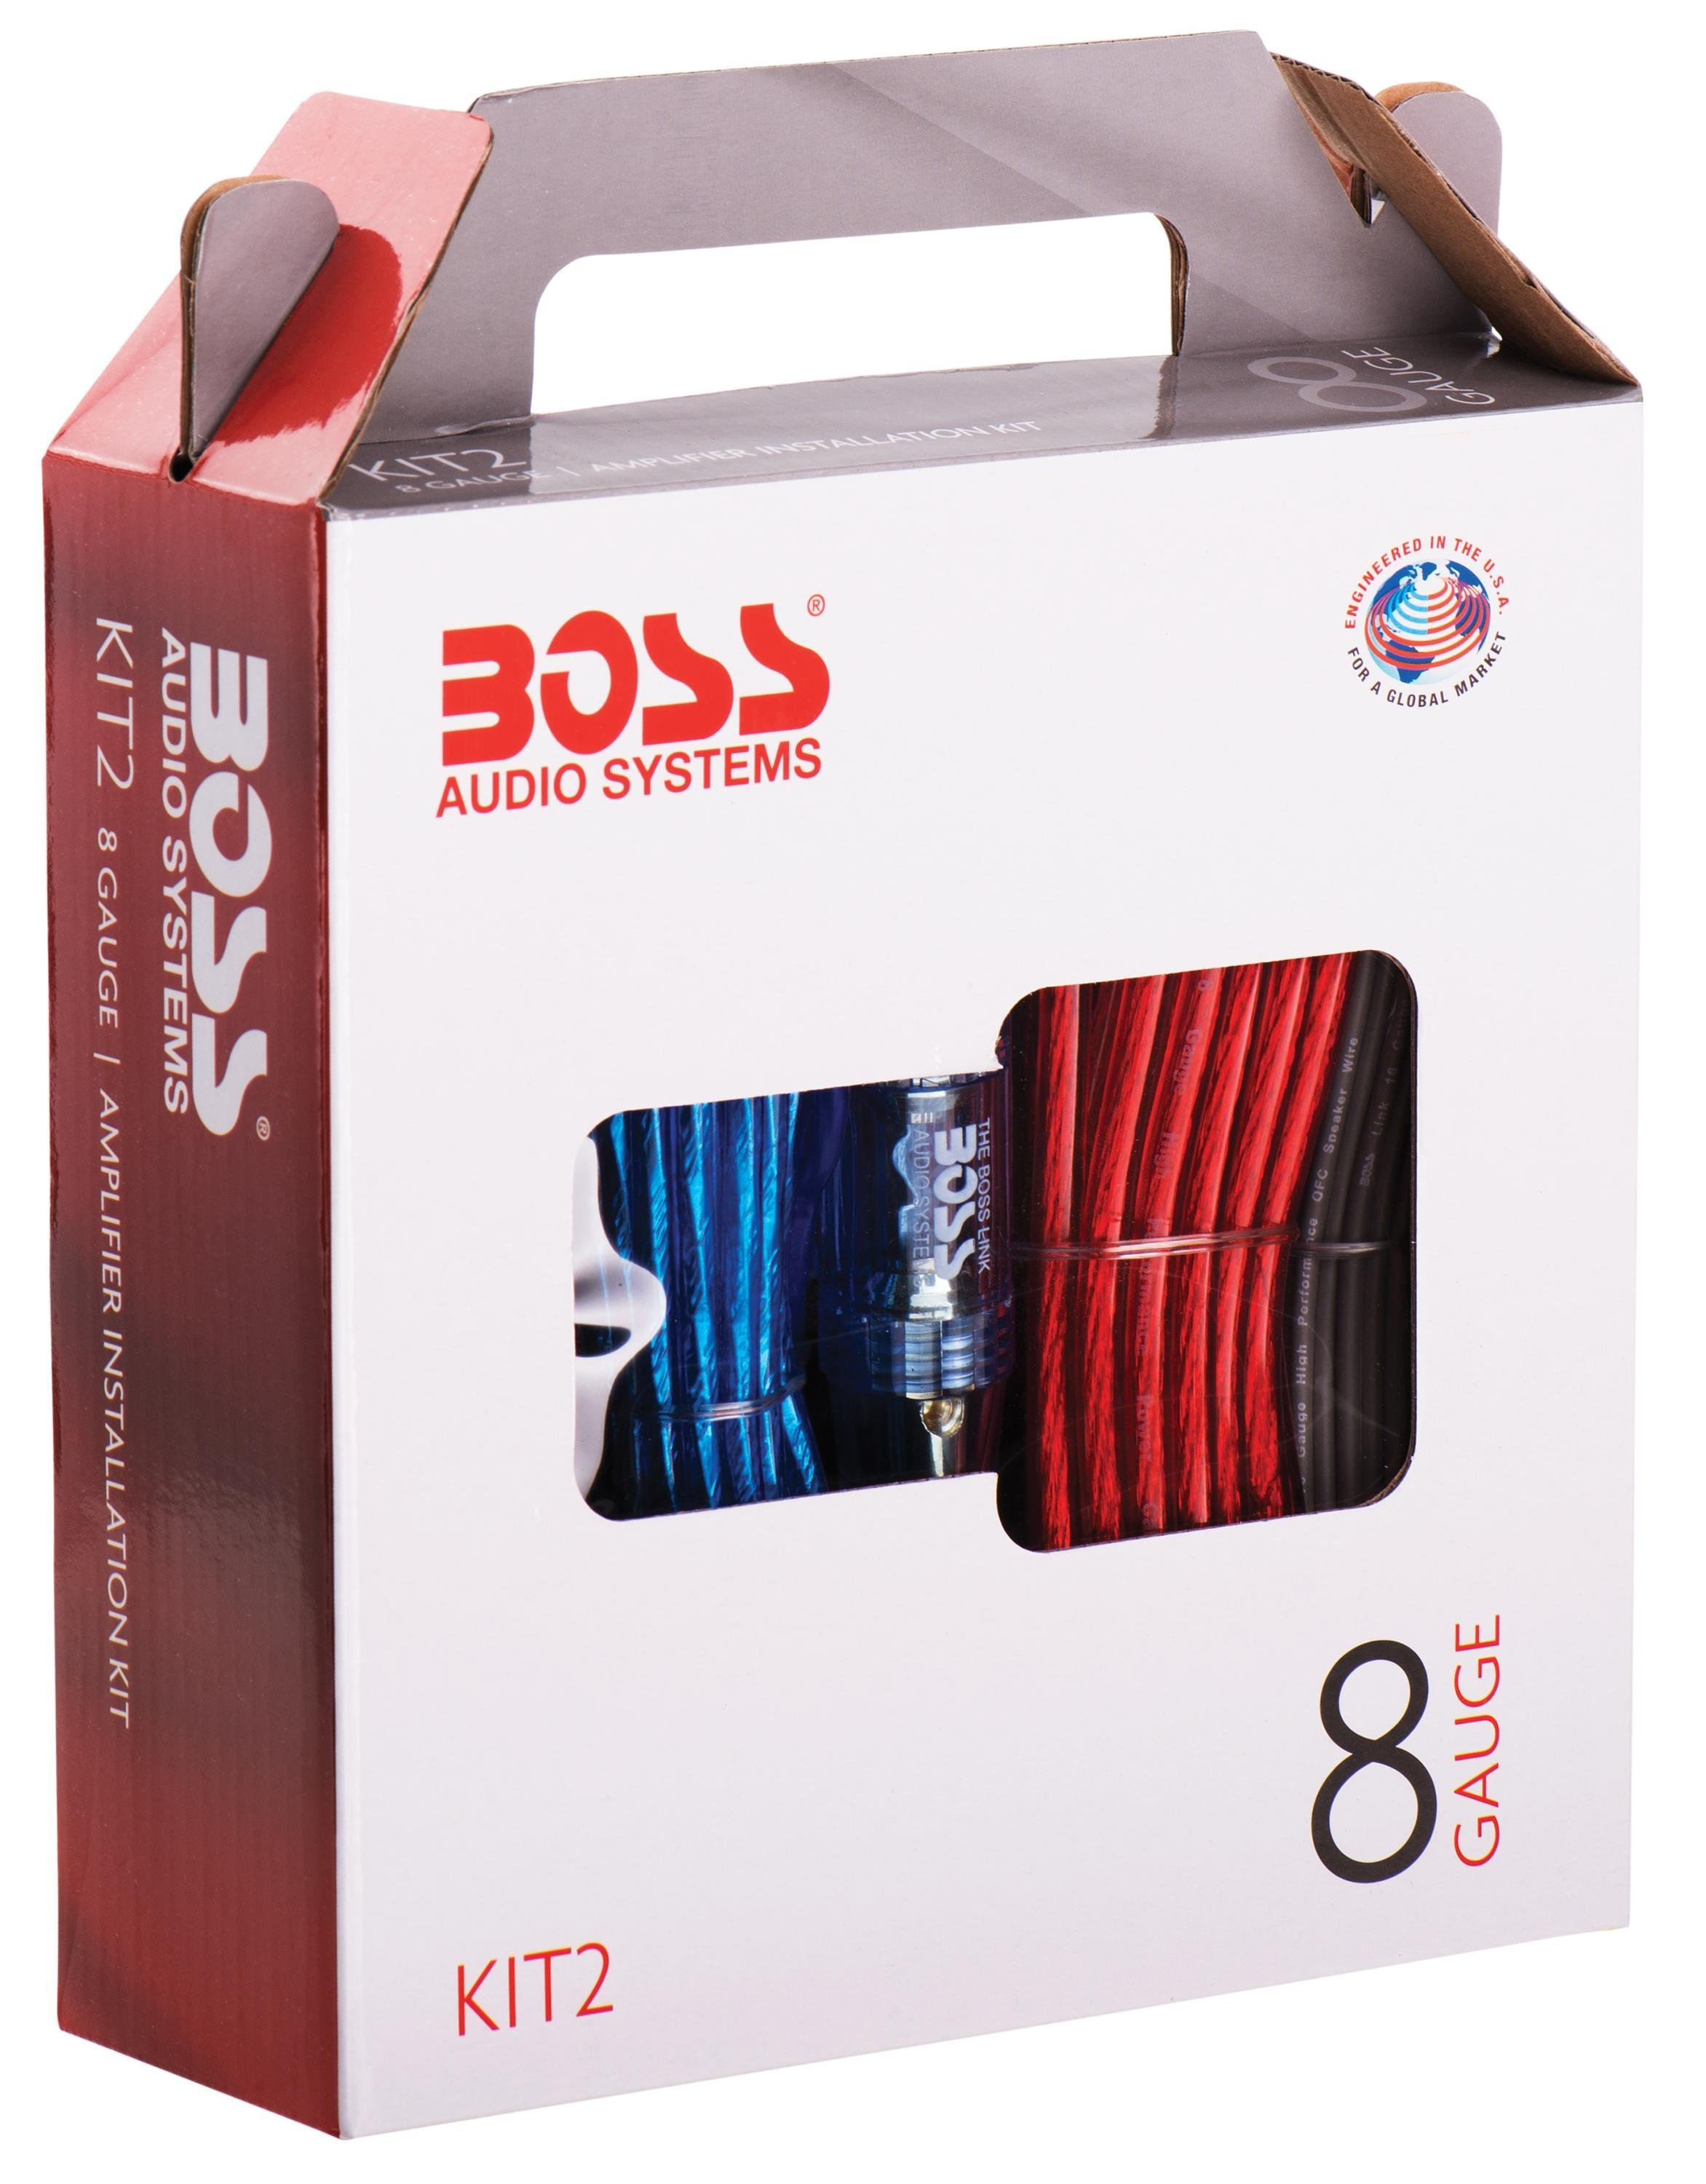 BOSS AUDIO KIT2 8 Gauge/ 3,27 mm Auto Installations-Set: Amazon.de ...